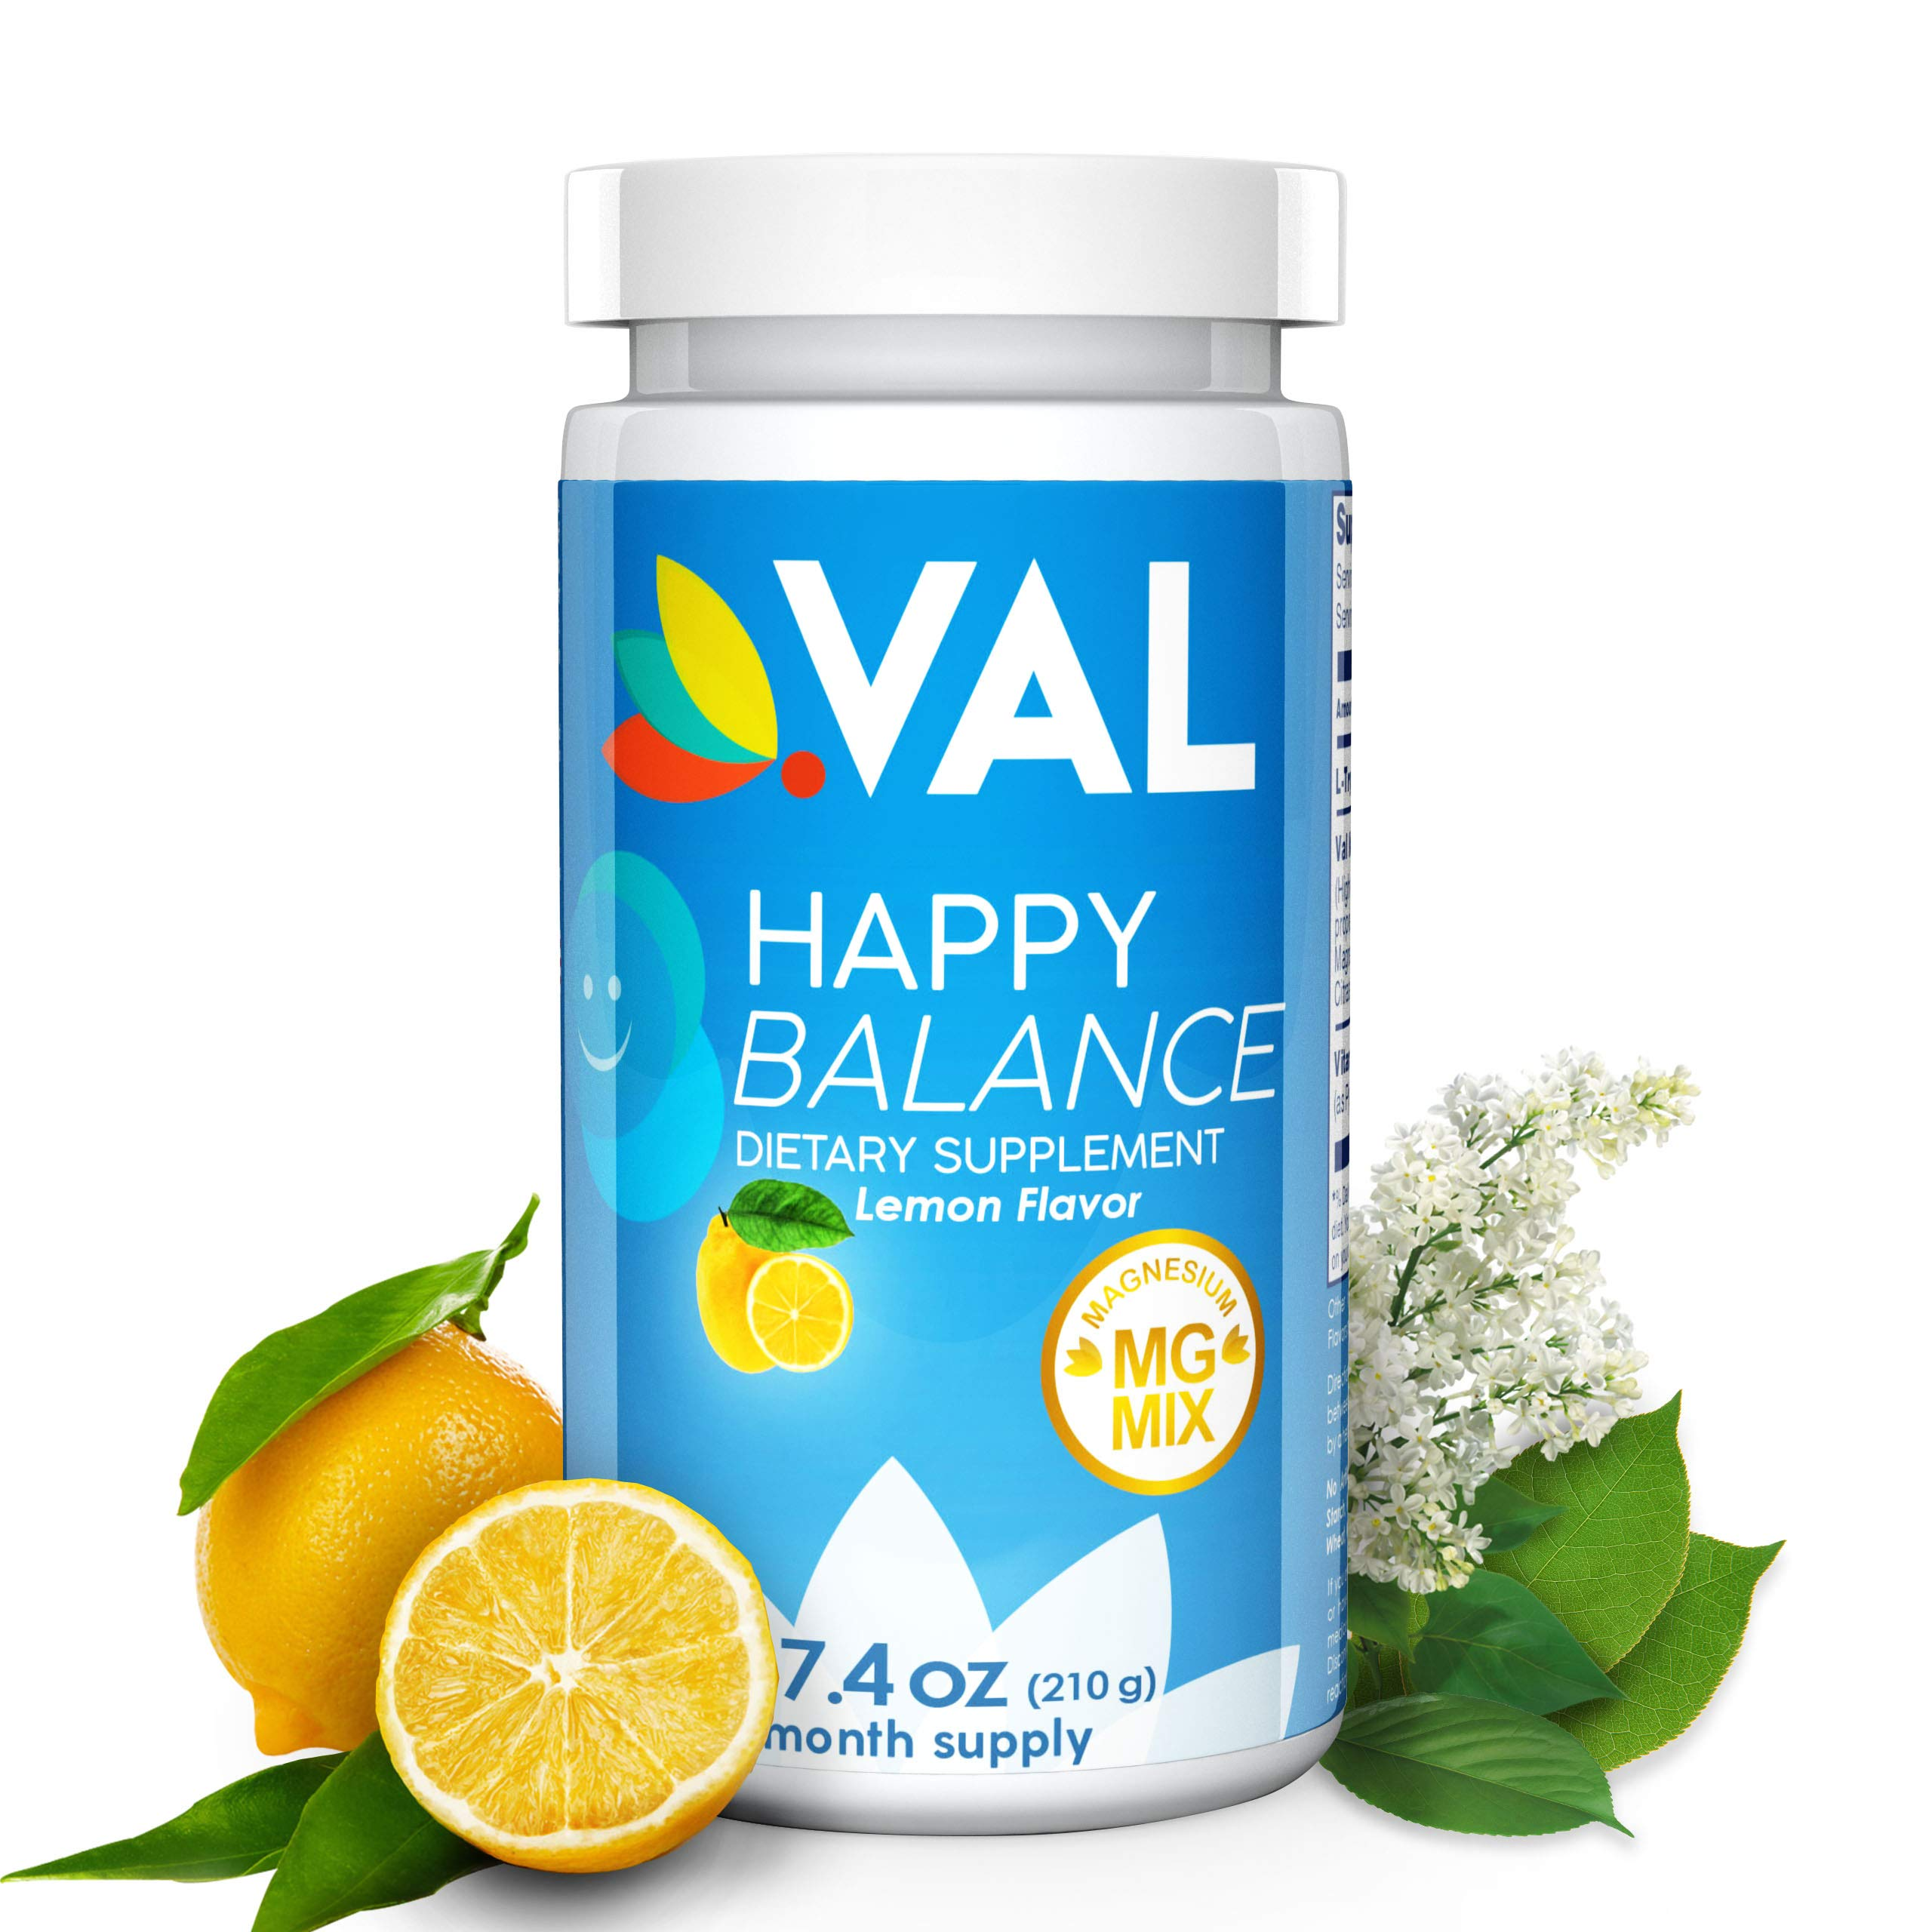 Magnesium, L Tryptophan, B6. Natural Anxiety Relief Supplement. Maximum Absorption/Bioavailability. Helps with Mood, Relaxation, PMS, Appetite Control. Naturally Sourced Serotonin Booster. Non GMO by VAL